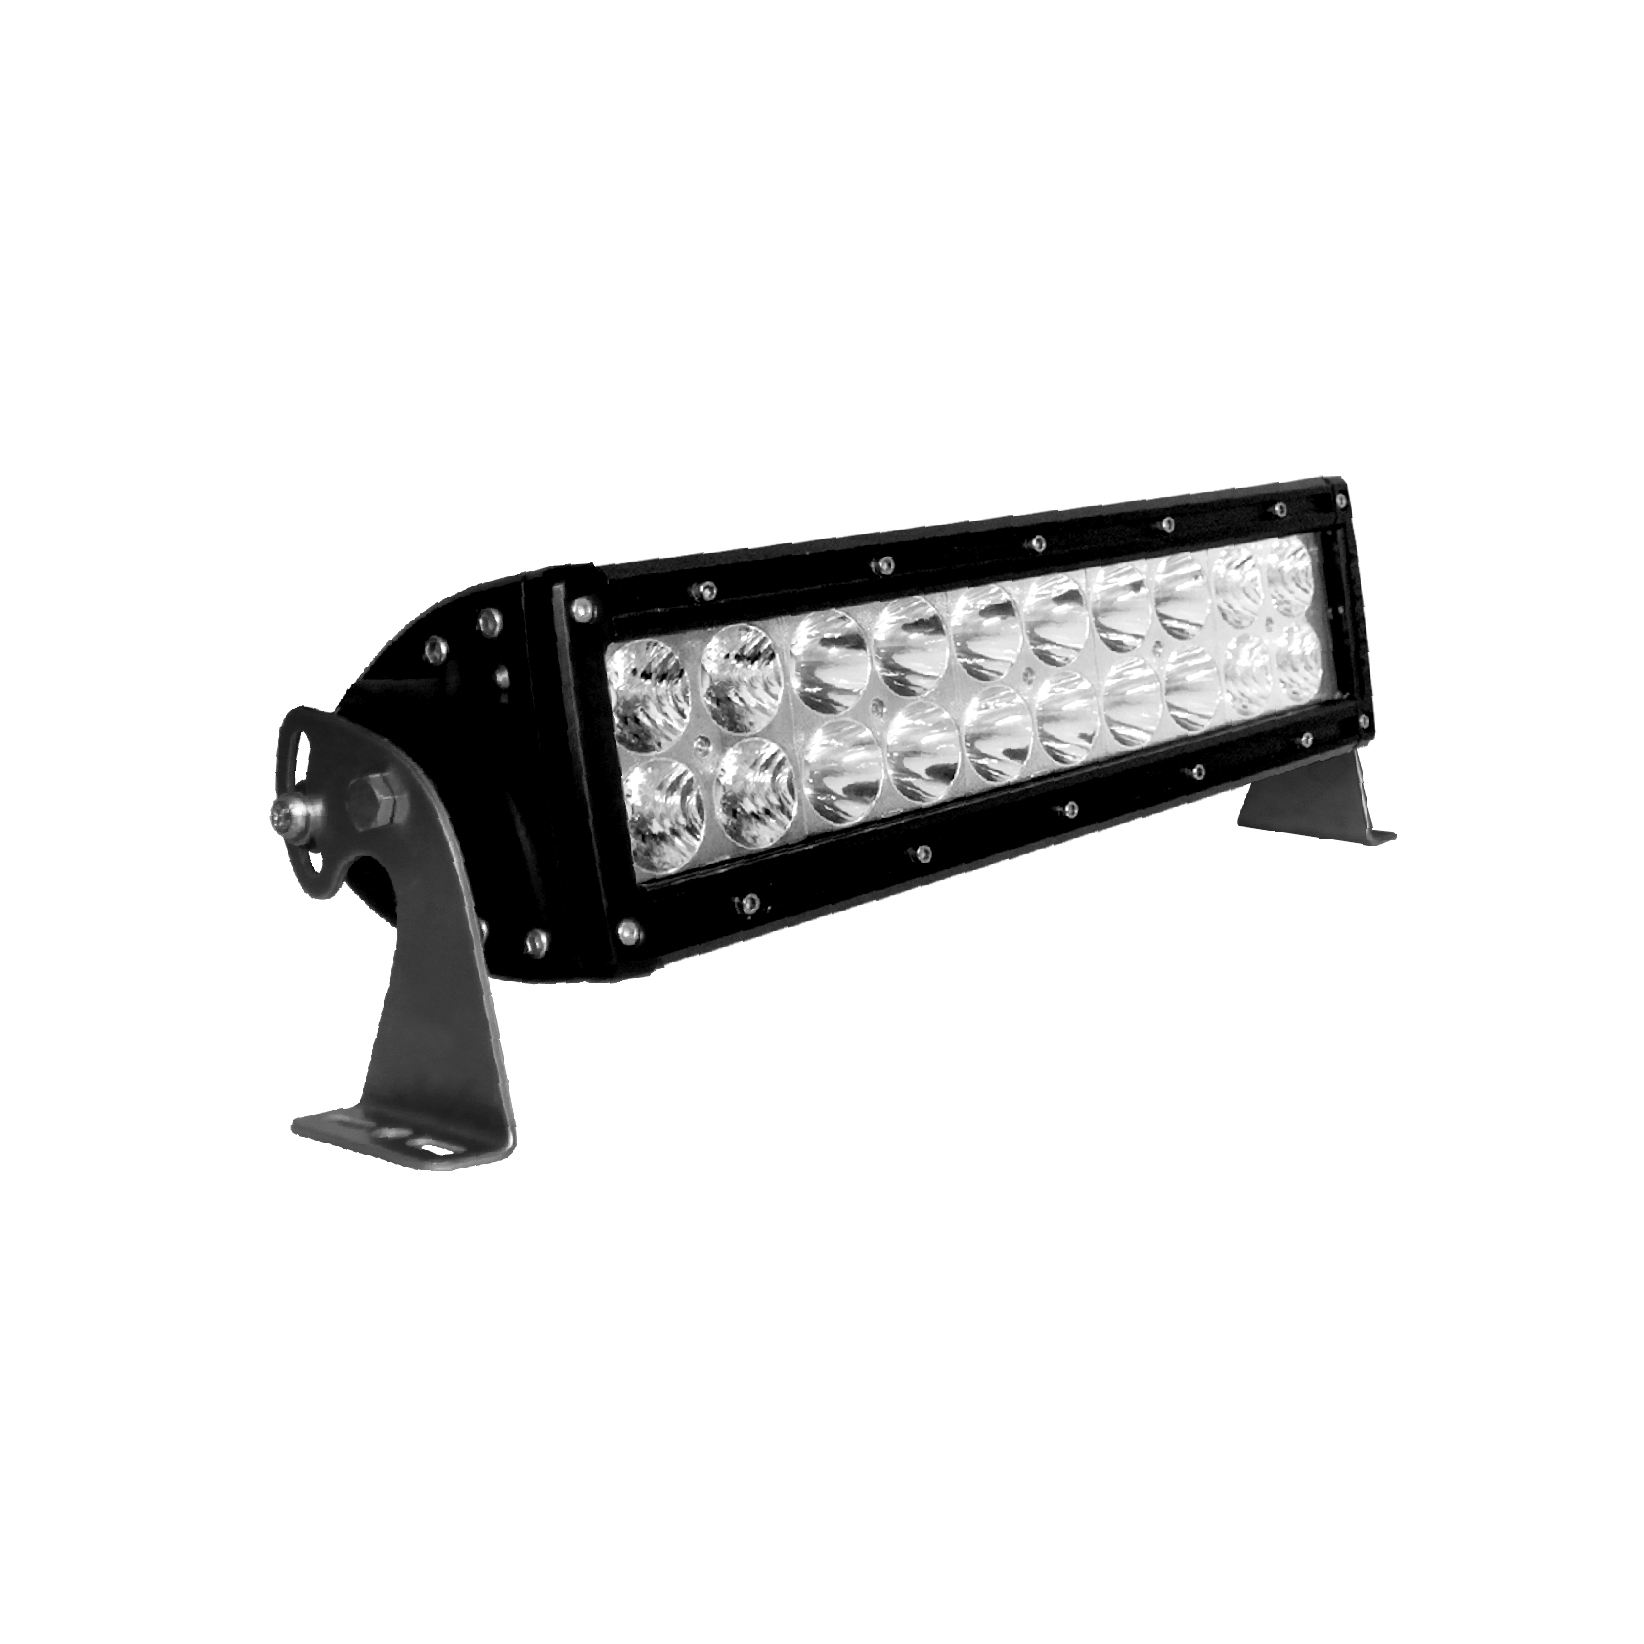 Aurora Emark offroad accessories 4x4 motorcycle lighting system led light bar for car